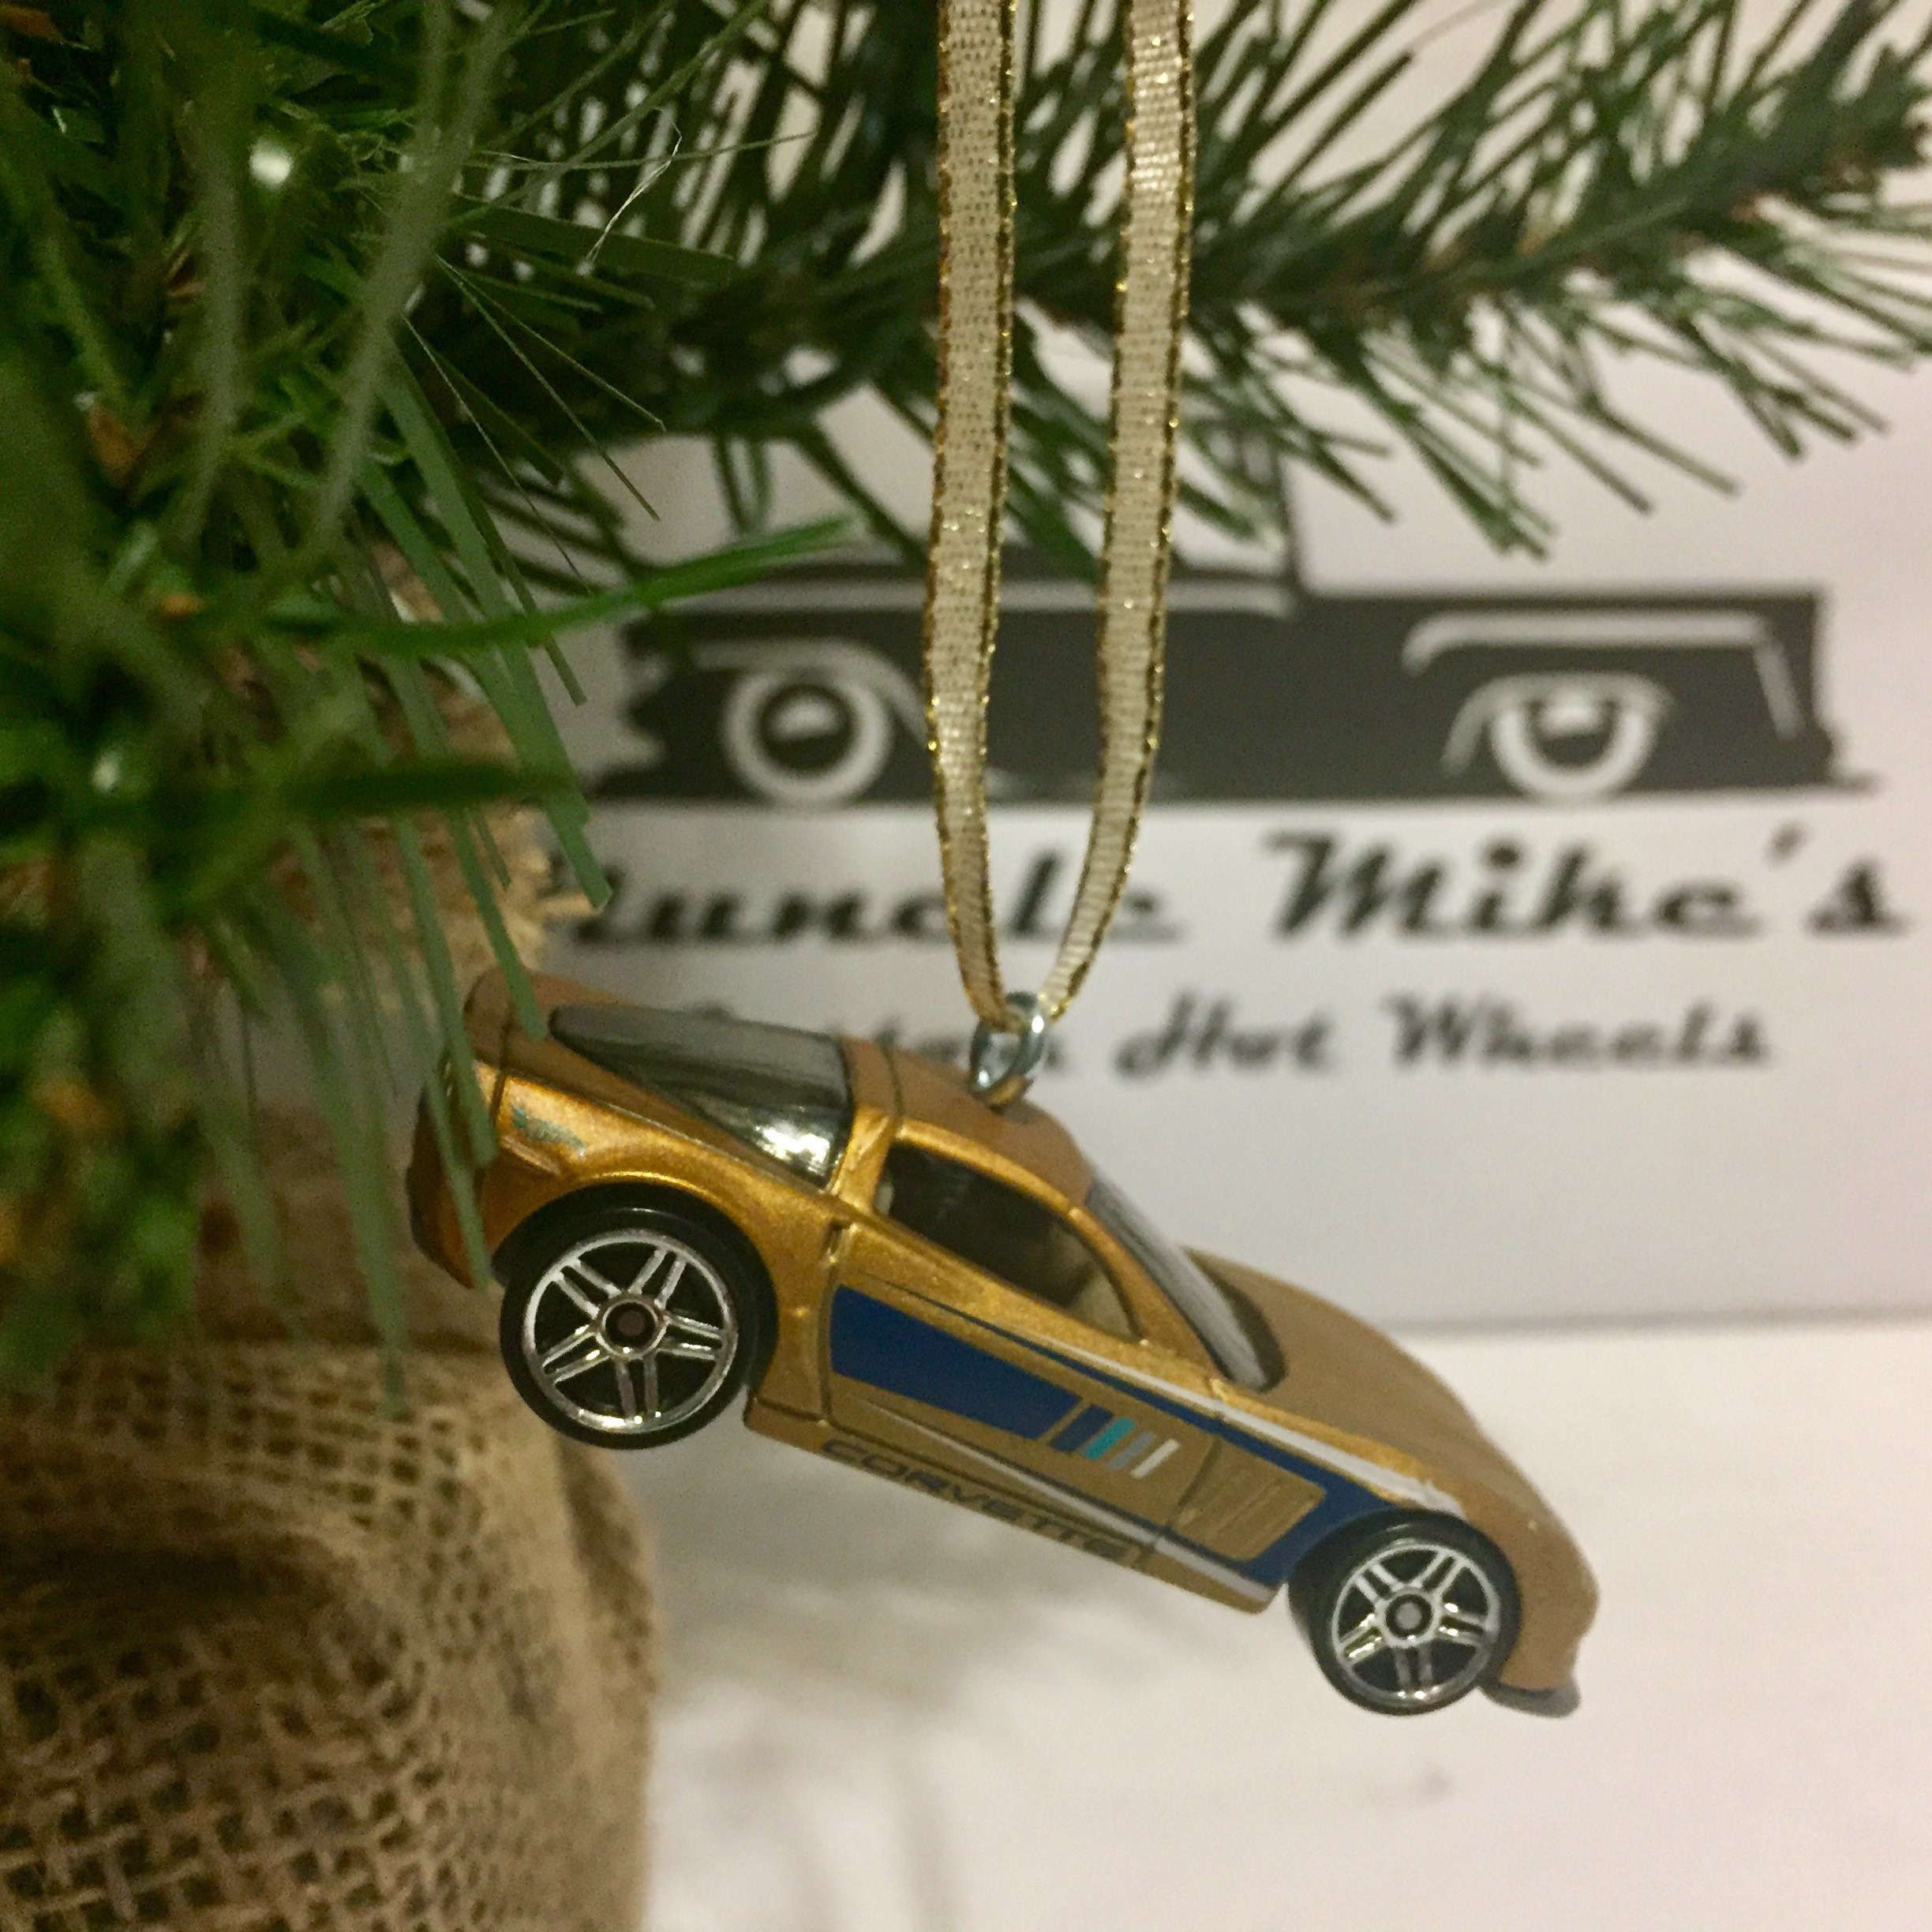 Hot Wheels Christmas Ornament Hot wheels Gold with blue pinstripe Corvette